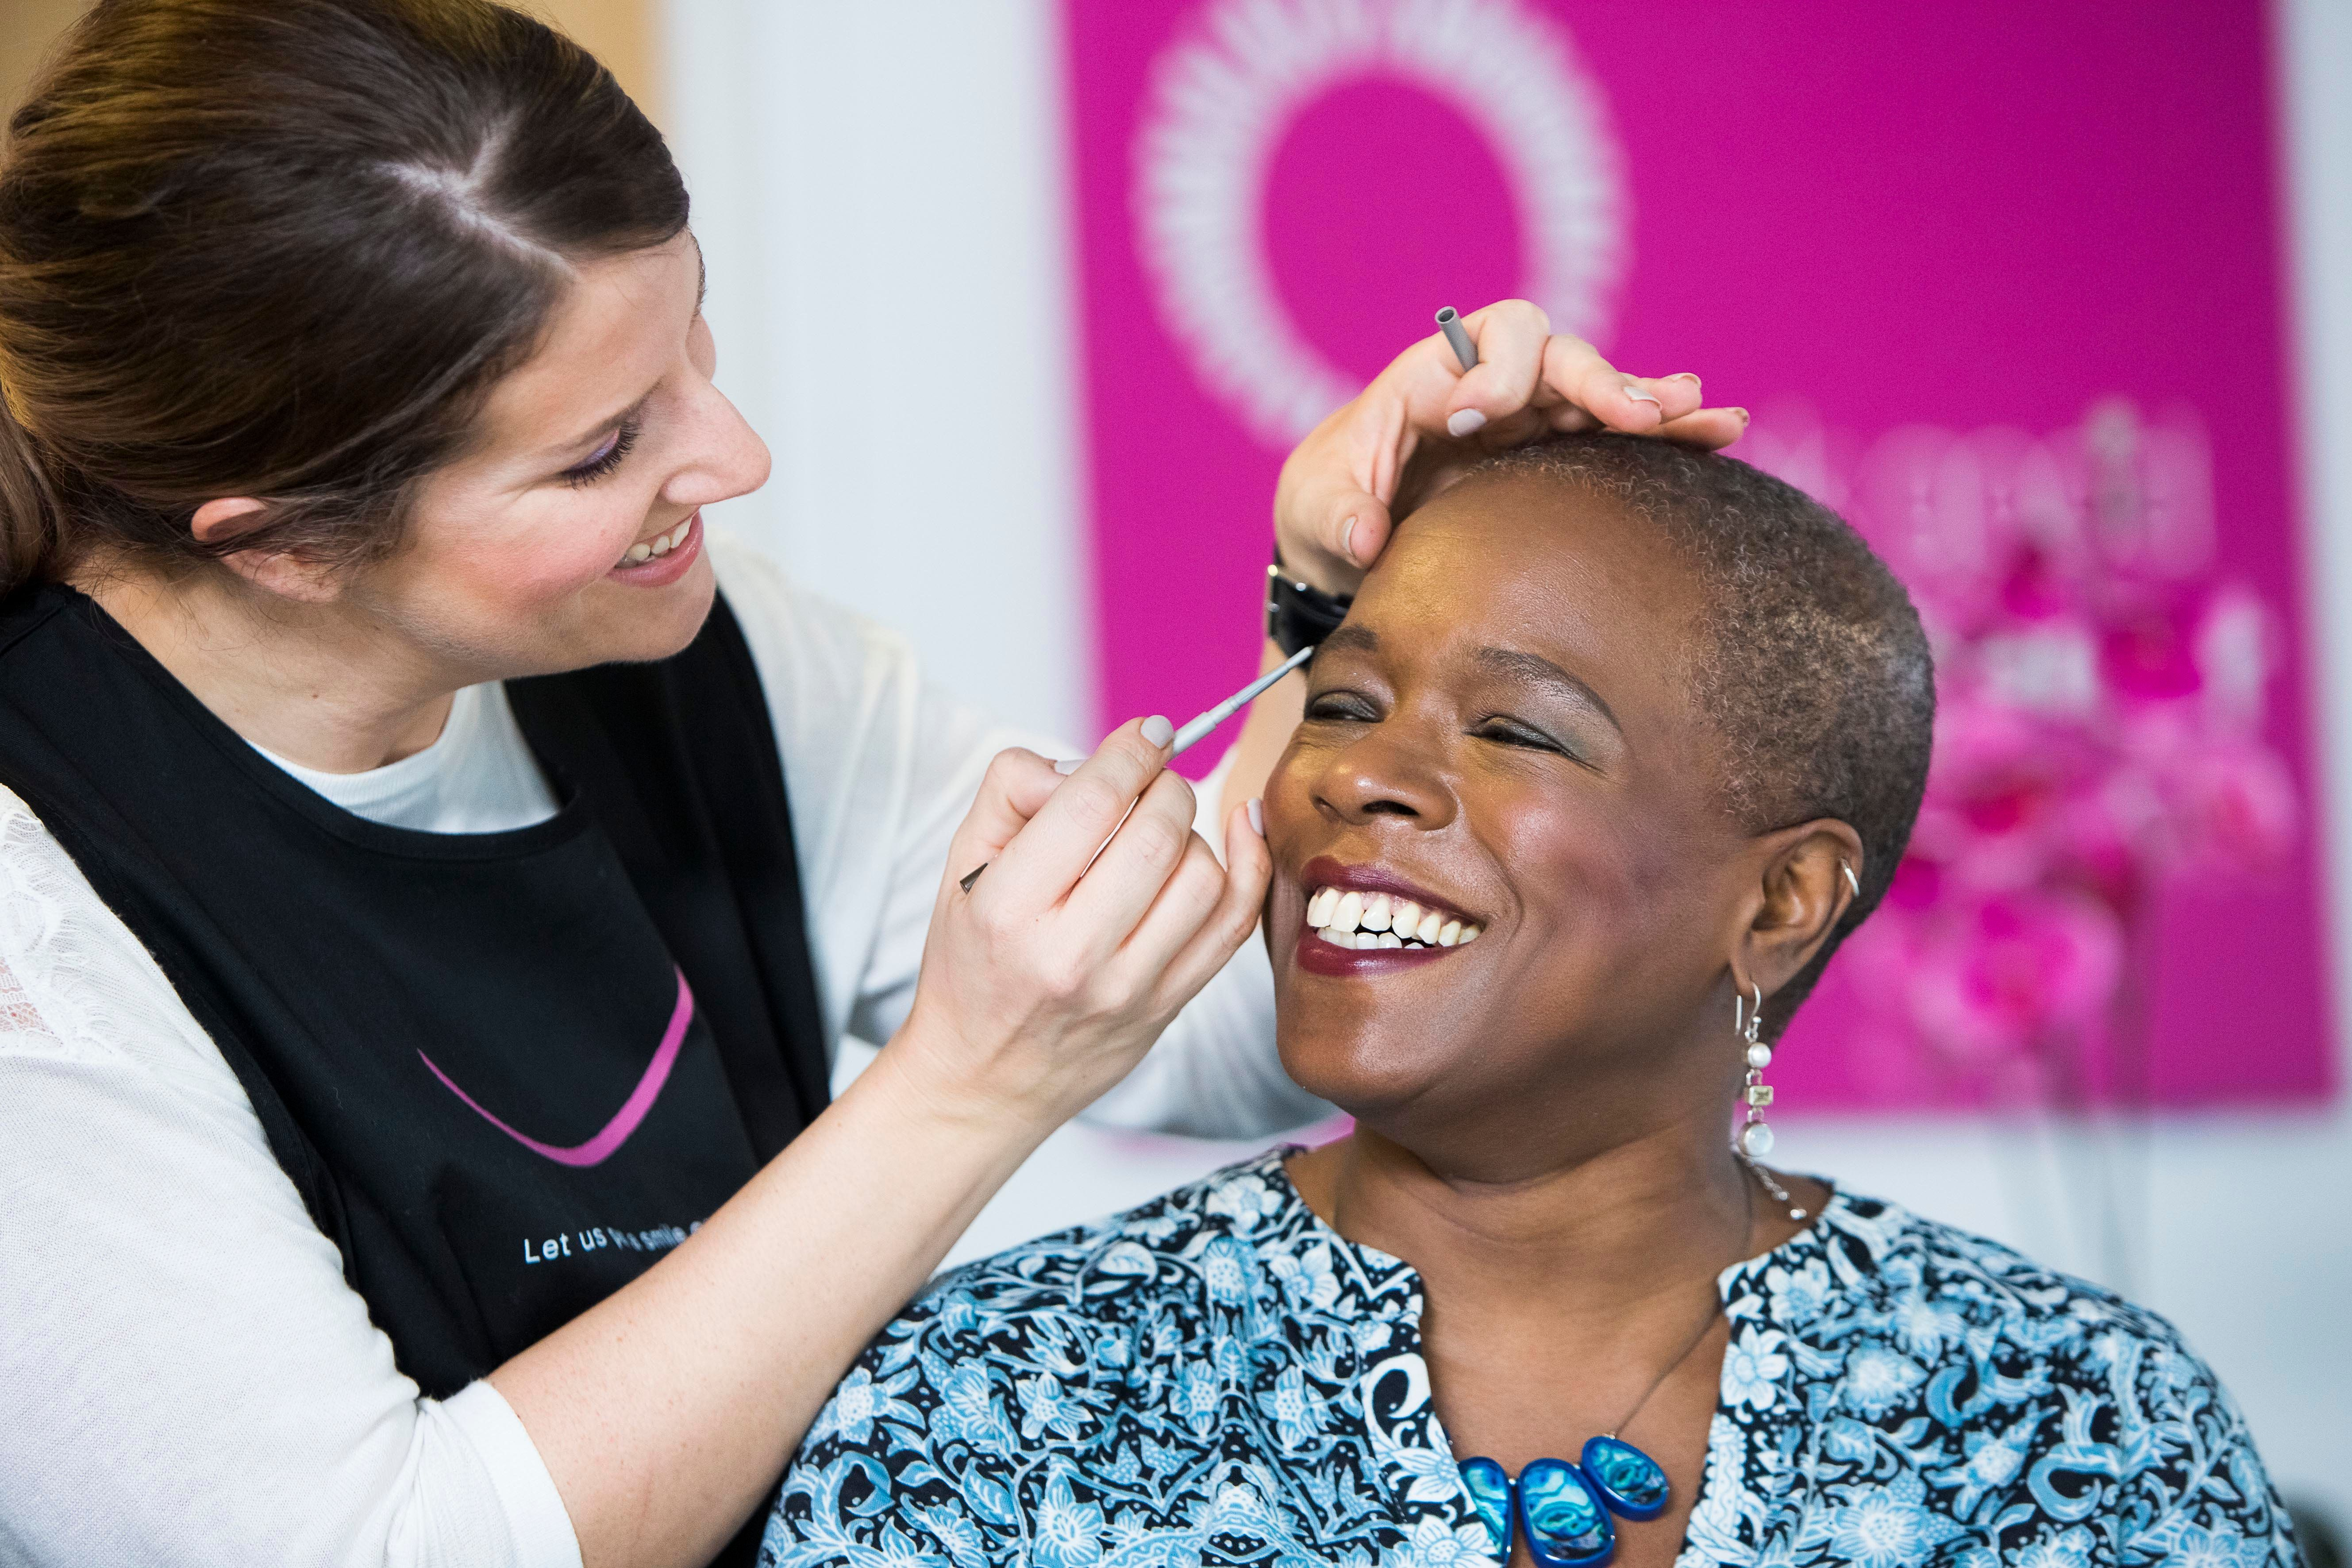 This Makeup Tutorial Can Help Cancer Patients Look Good And Feel